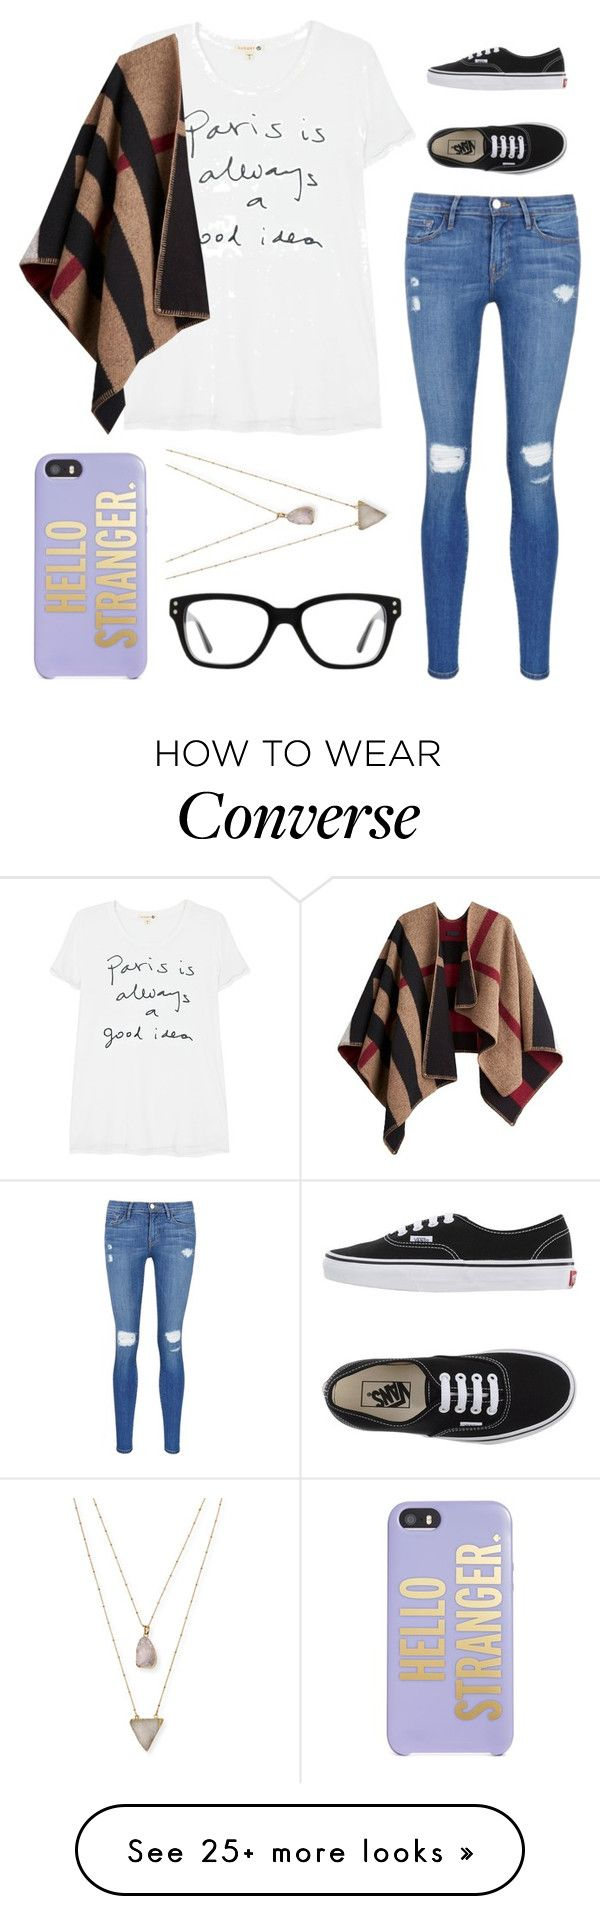 """""""Untitled #412"""" by tokyoghoul1 on Polyvore featuring Sundry, Burberry, Frame Denim, Kate Spade, Converse, Panacea and Vans"""